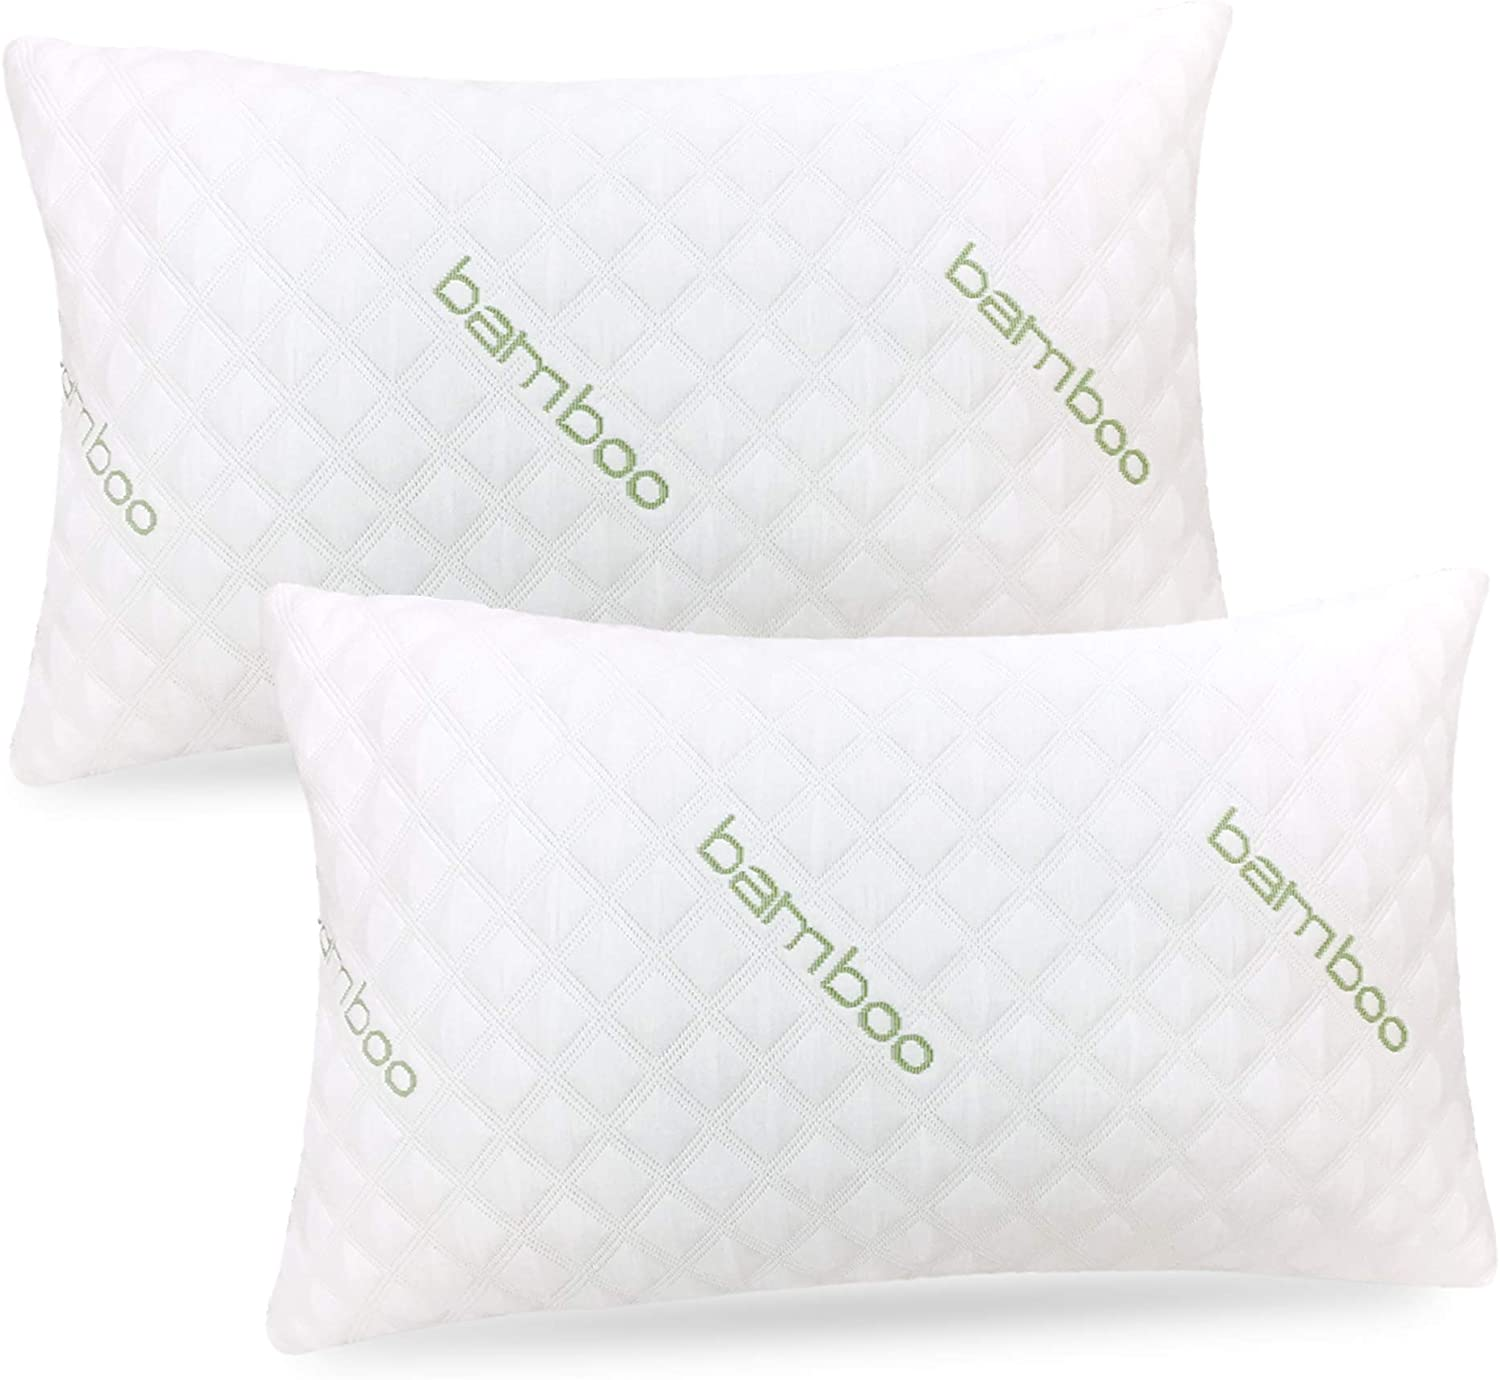 ik bamboo pillow king size premium memory foam pillow with washable pillow case adjustable king